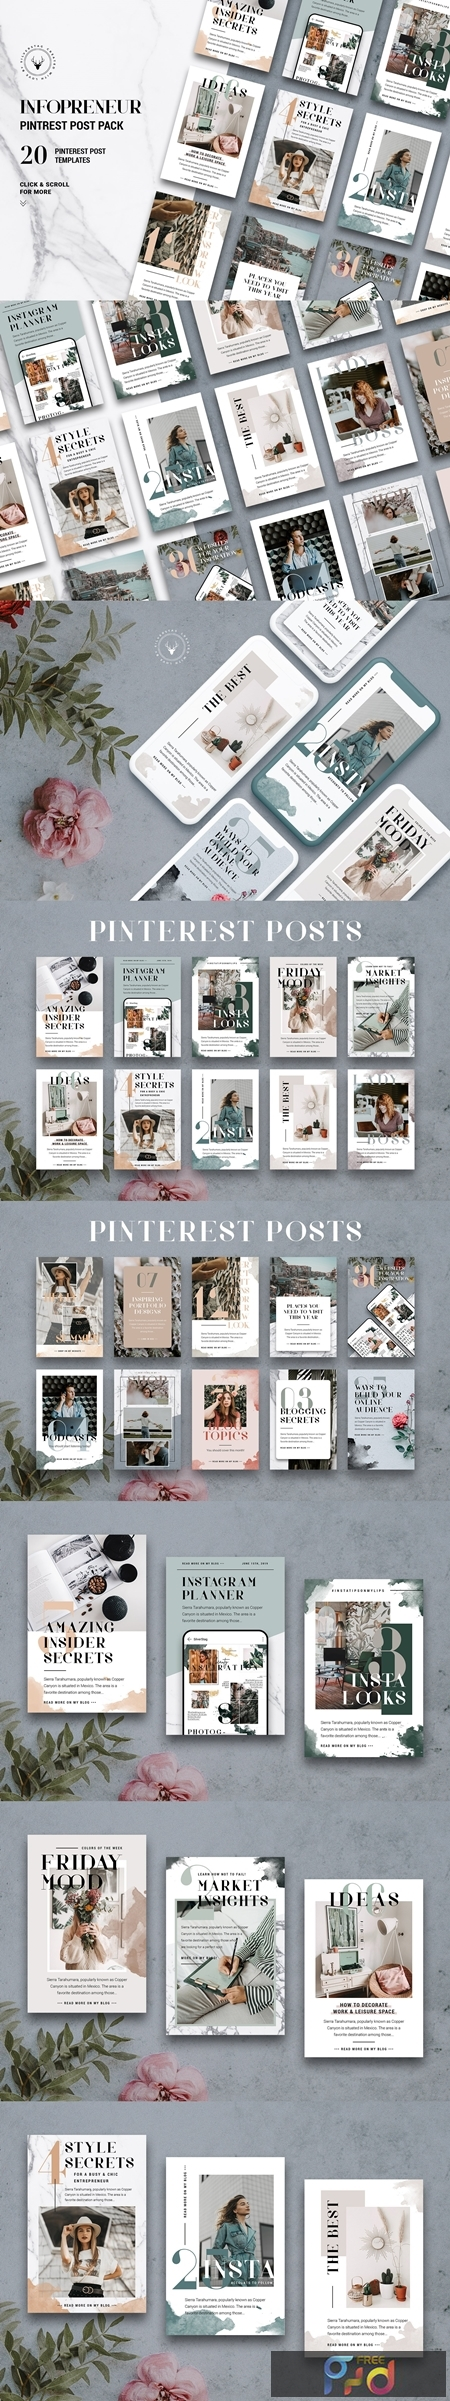 Infopreneur - Pinterest Posts Pack 3885747 1